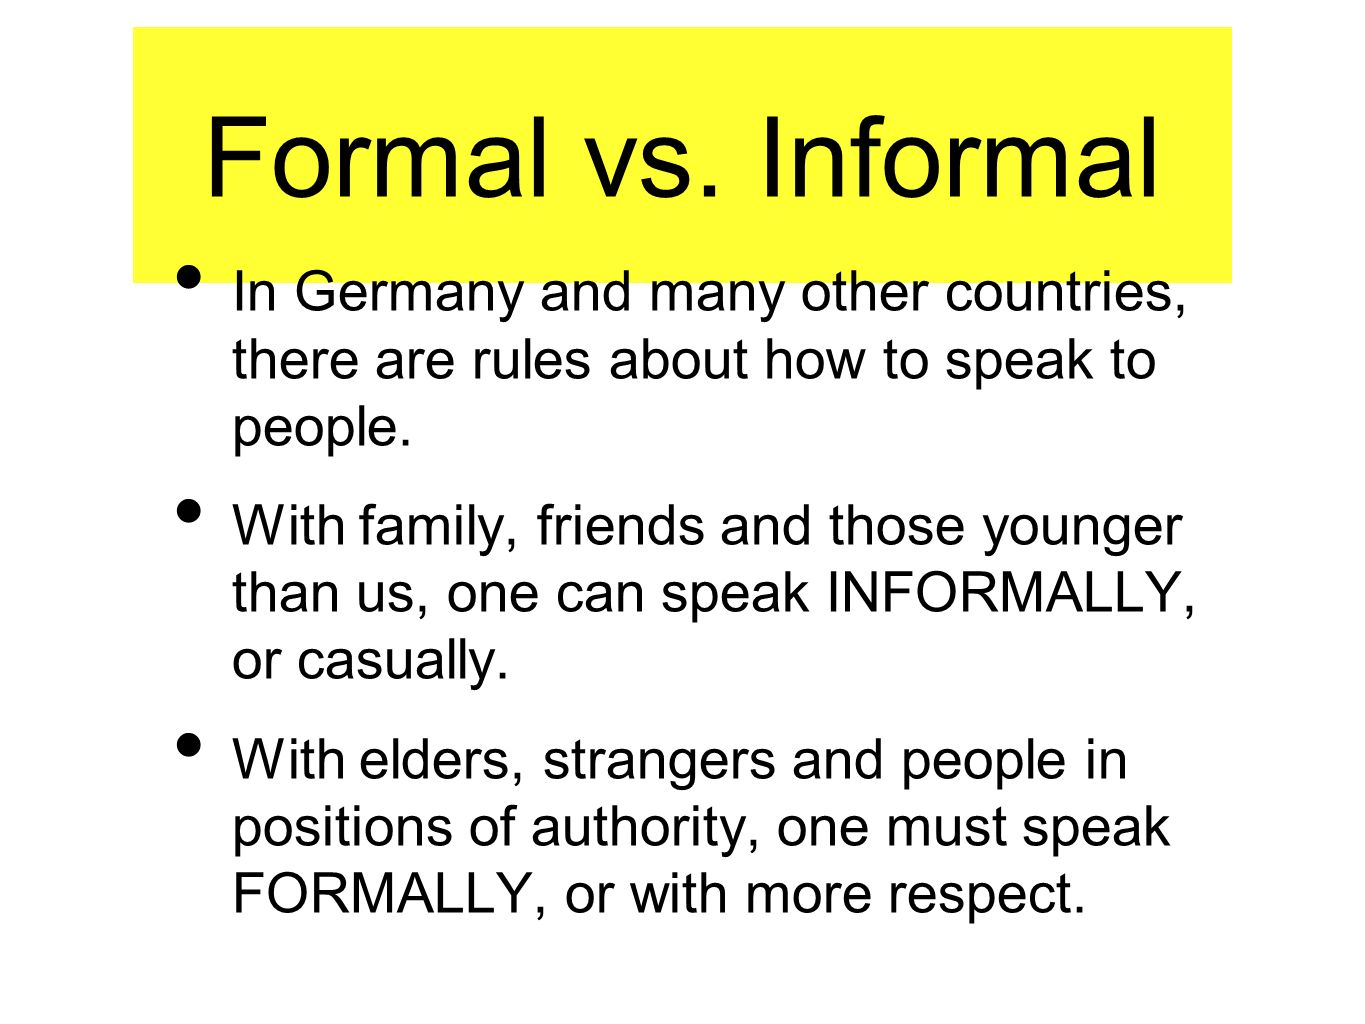 Formal vs. Informal In Germany and many other countries, there are rules about how to speak to people.